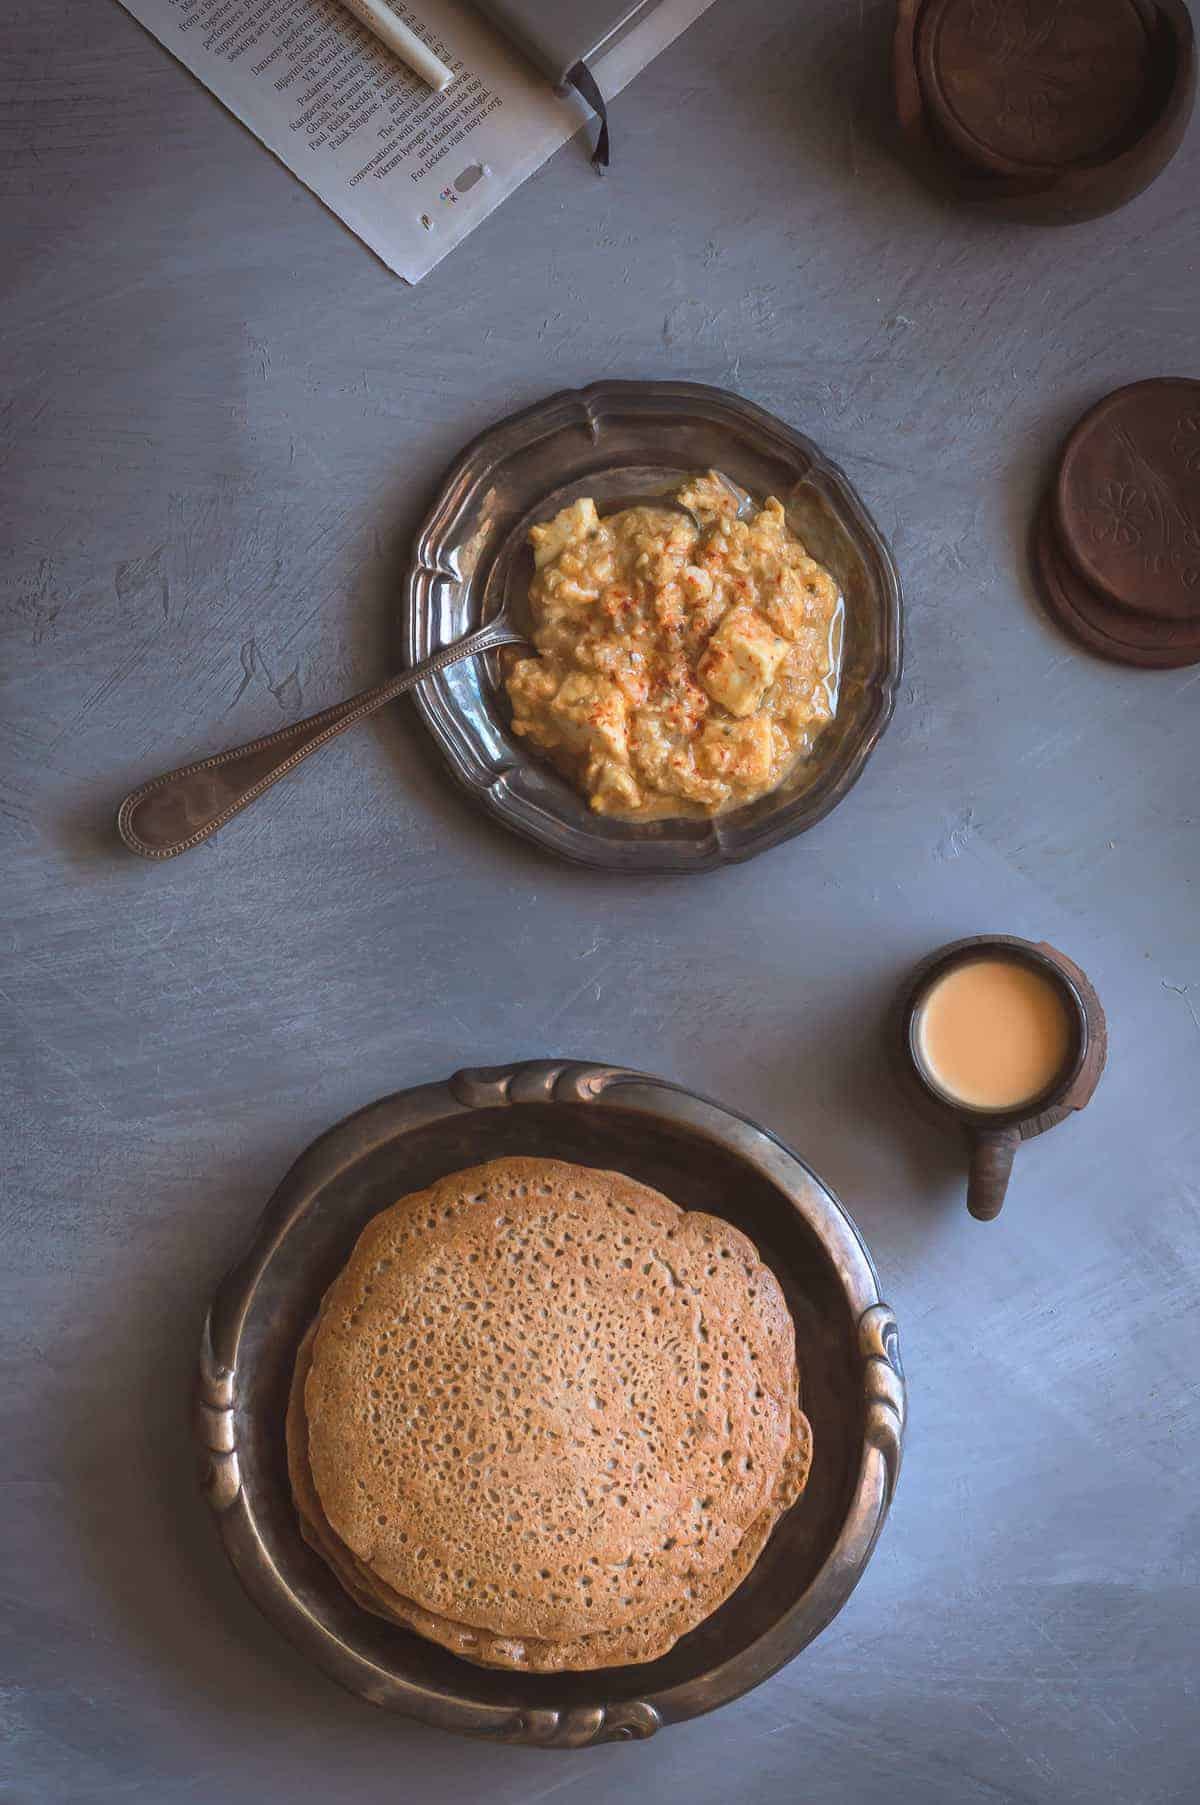 Khura is a traditional East Indian breakfast. Fermented batter with buckwheat flour and chaang, alcoholic beverage. These soft, fluffy pancakes are simple, quick, gluten free and can be made diary free!